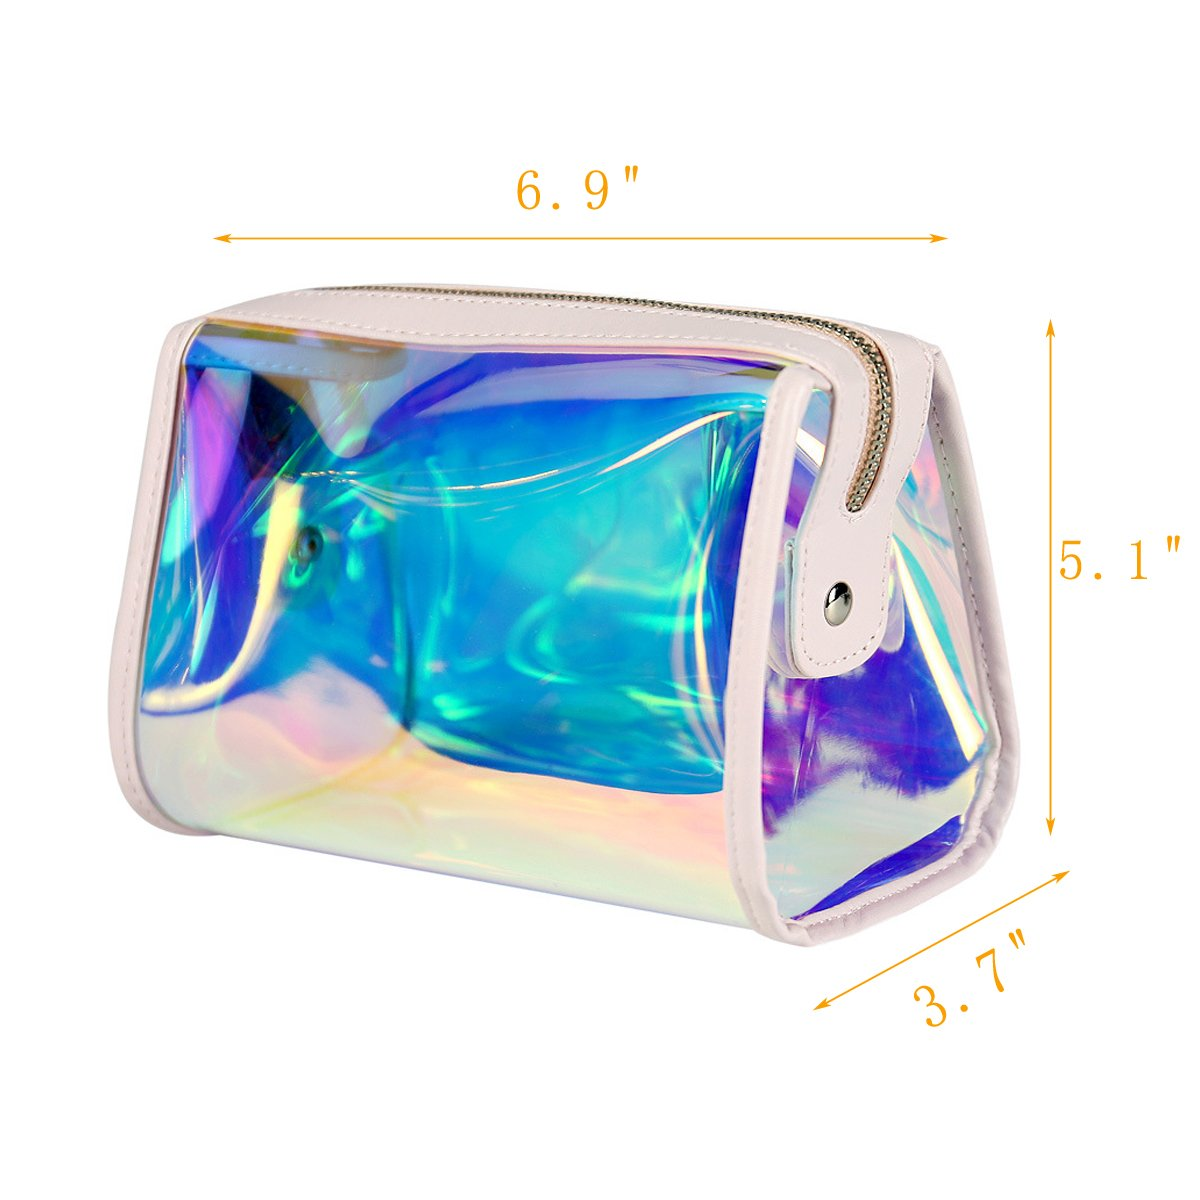 Andear Women's PVC Clear Hologram Transparent Clutch MakeUp Purse Bag for Girls by Andear (Image #7)